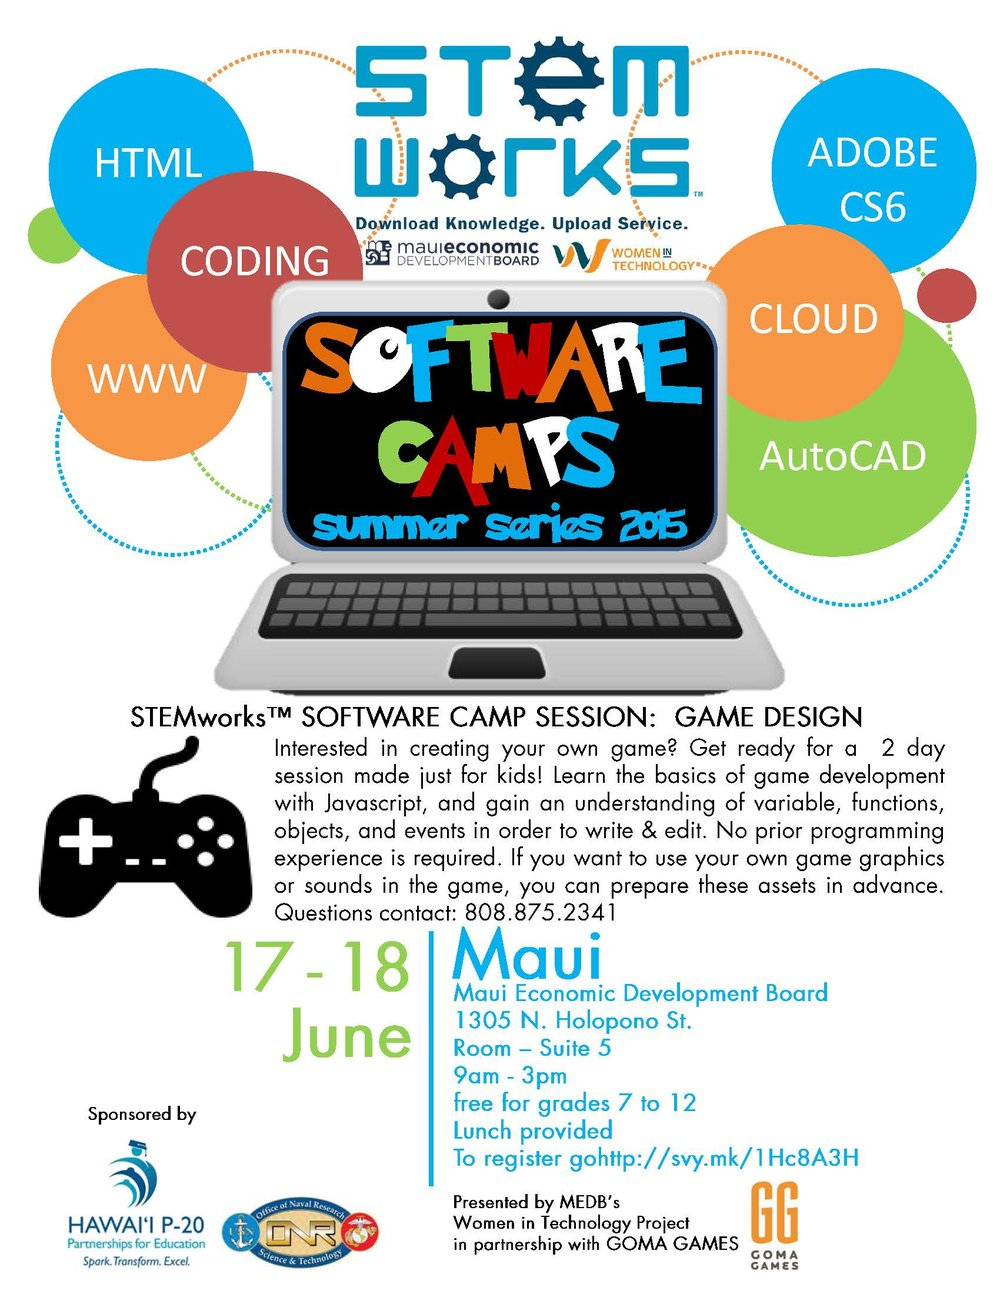 FLYER_MAUISoftwareCamp_summergamedesign2015.jpg